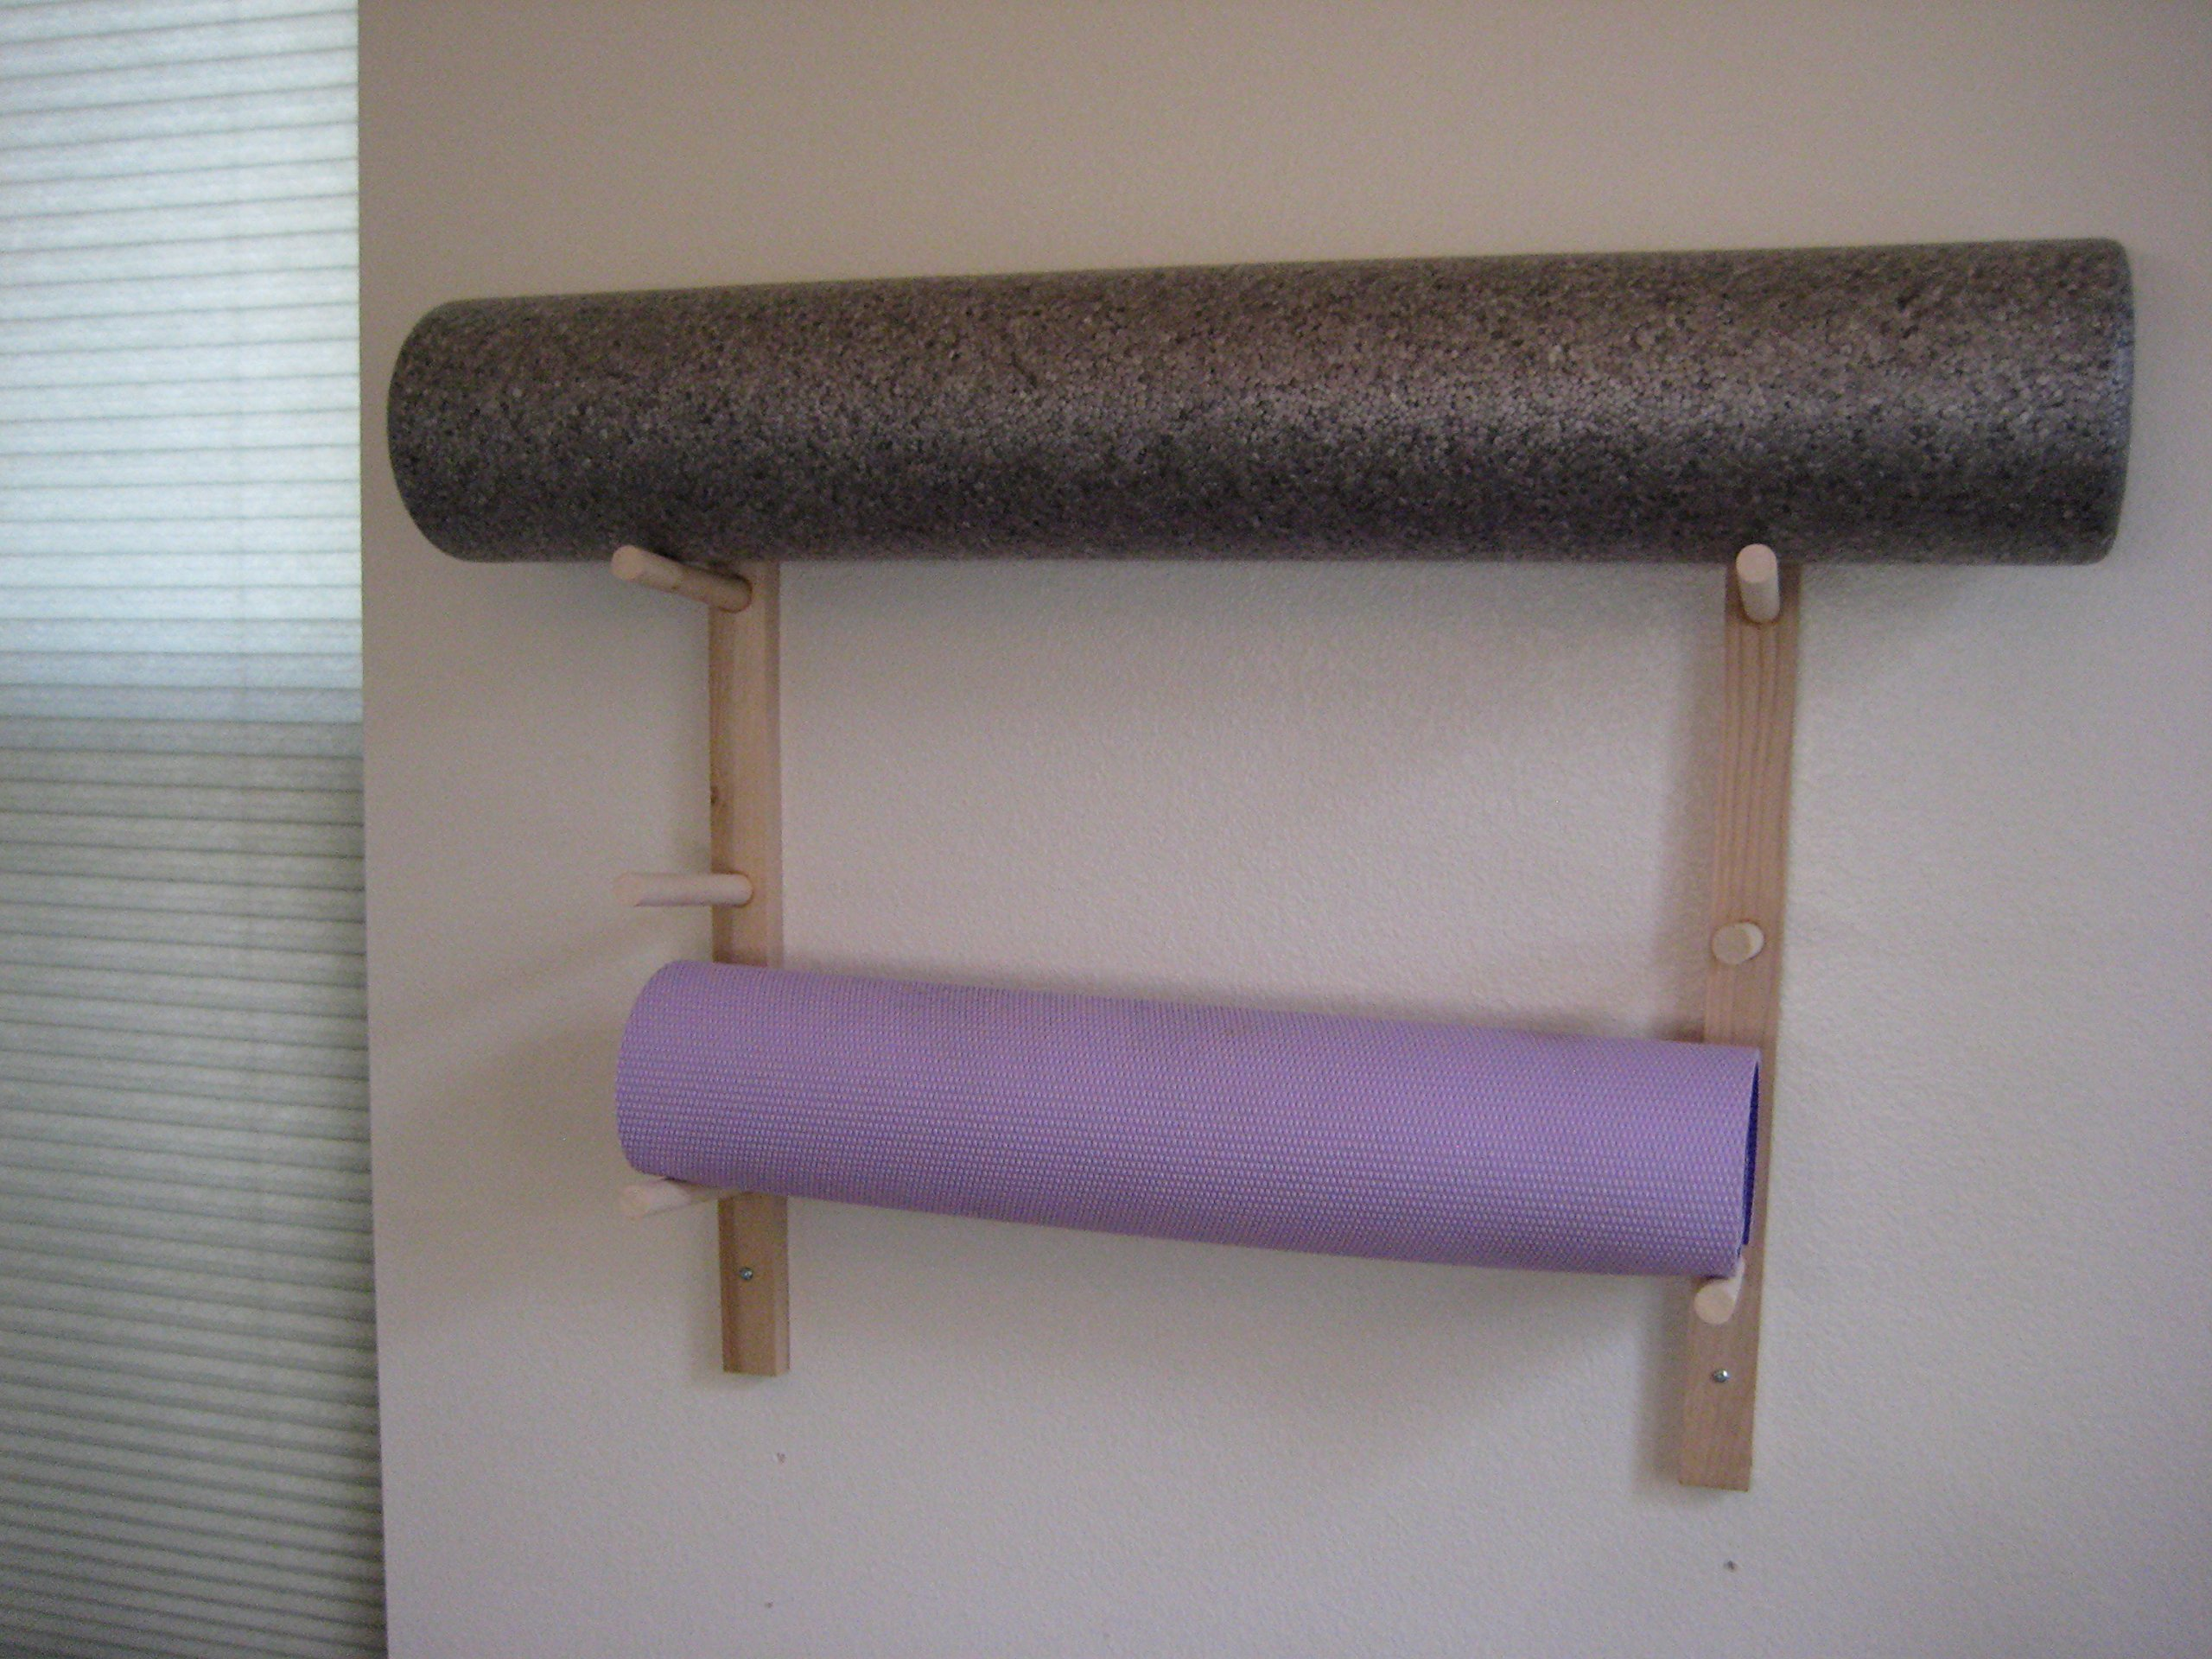 1 Set Foam Roller And Yoga Mat Storage Rack Wall Mount In Sustainable Hardwood 3 6